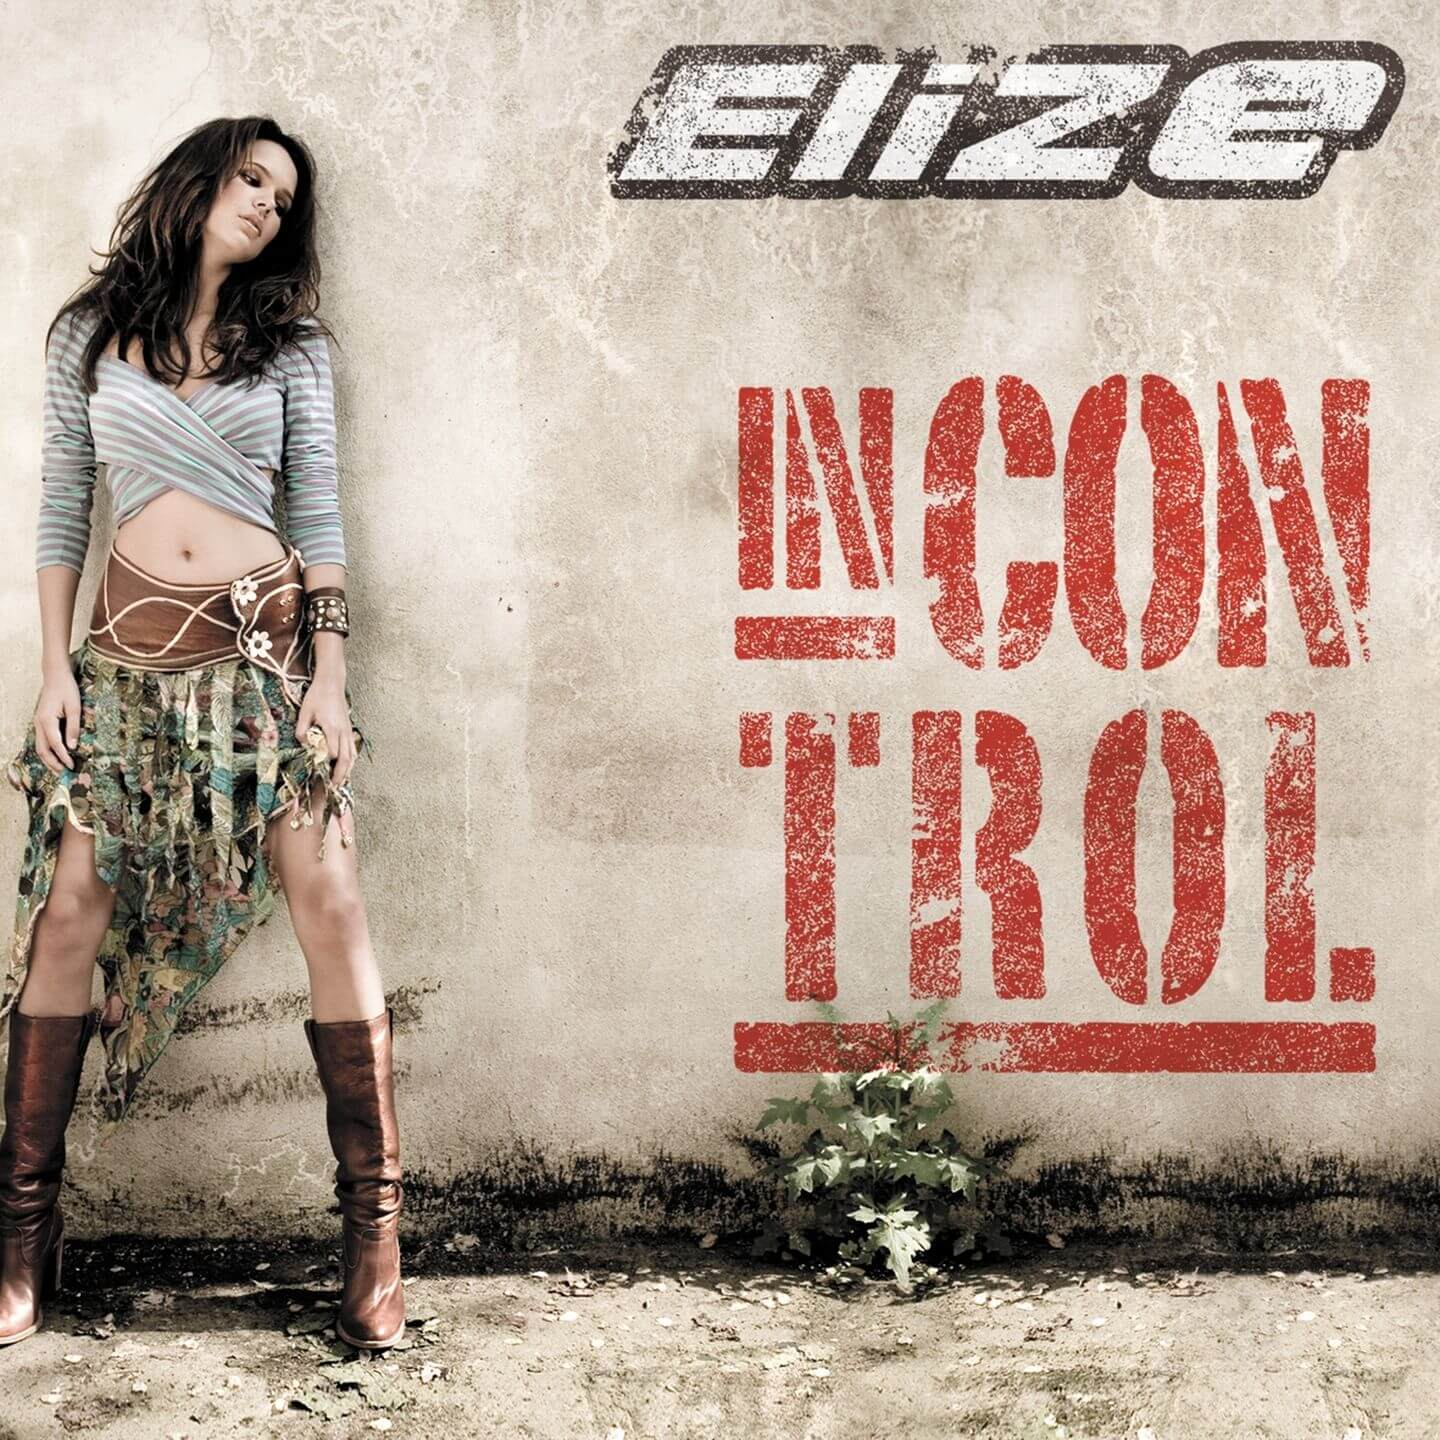 EliZe - In Control